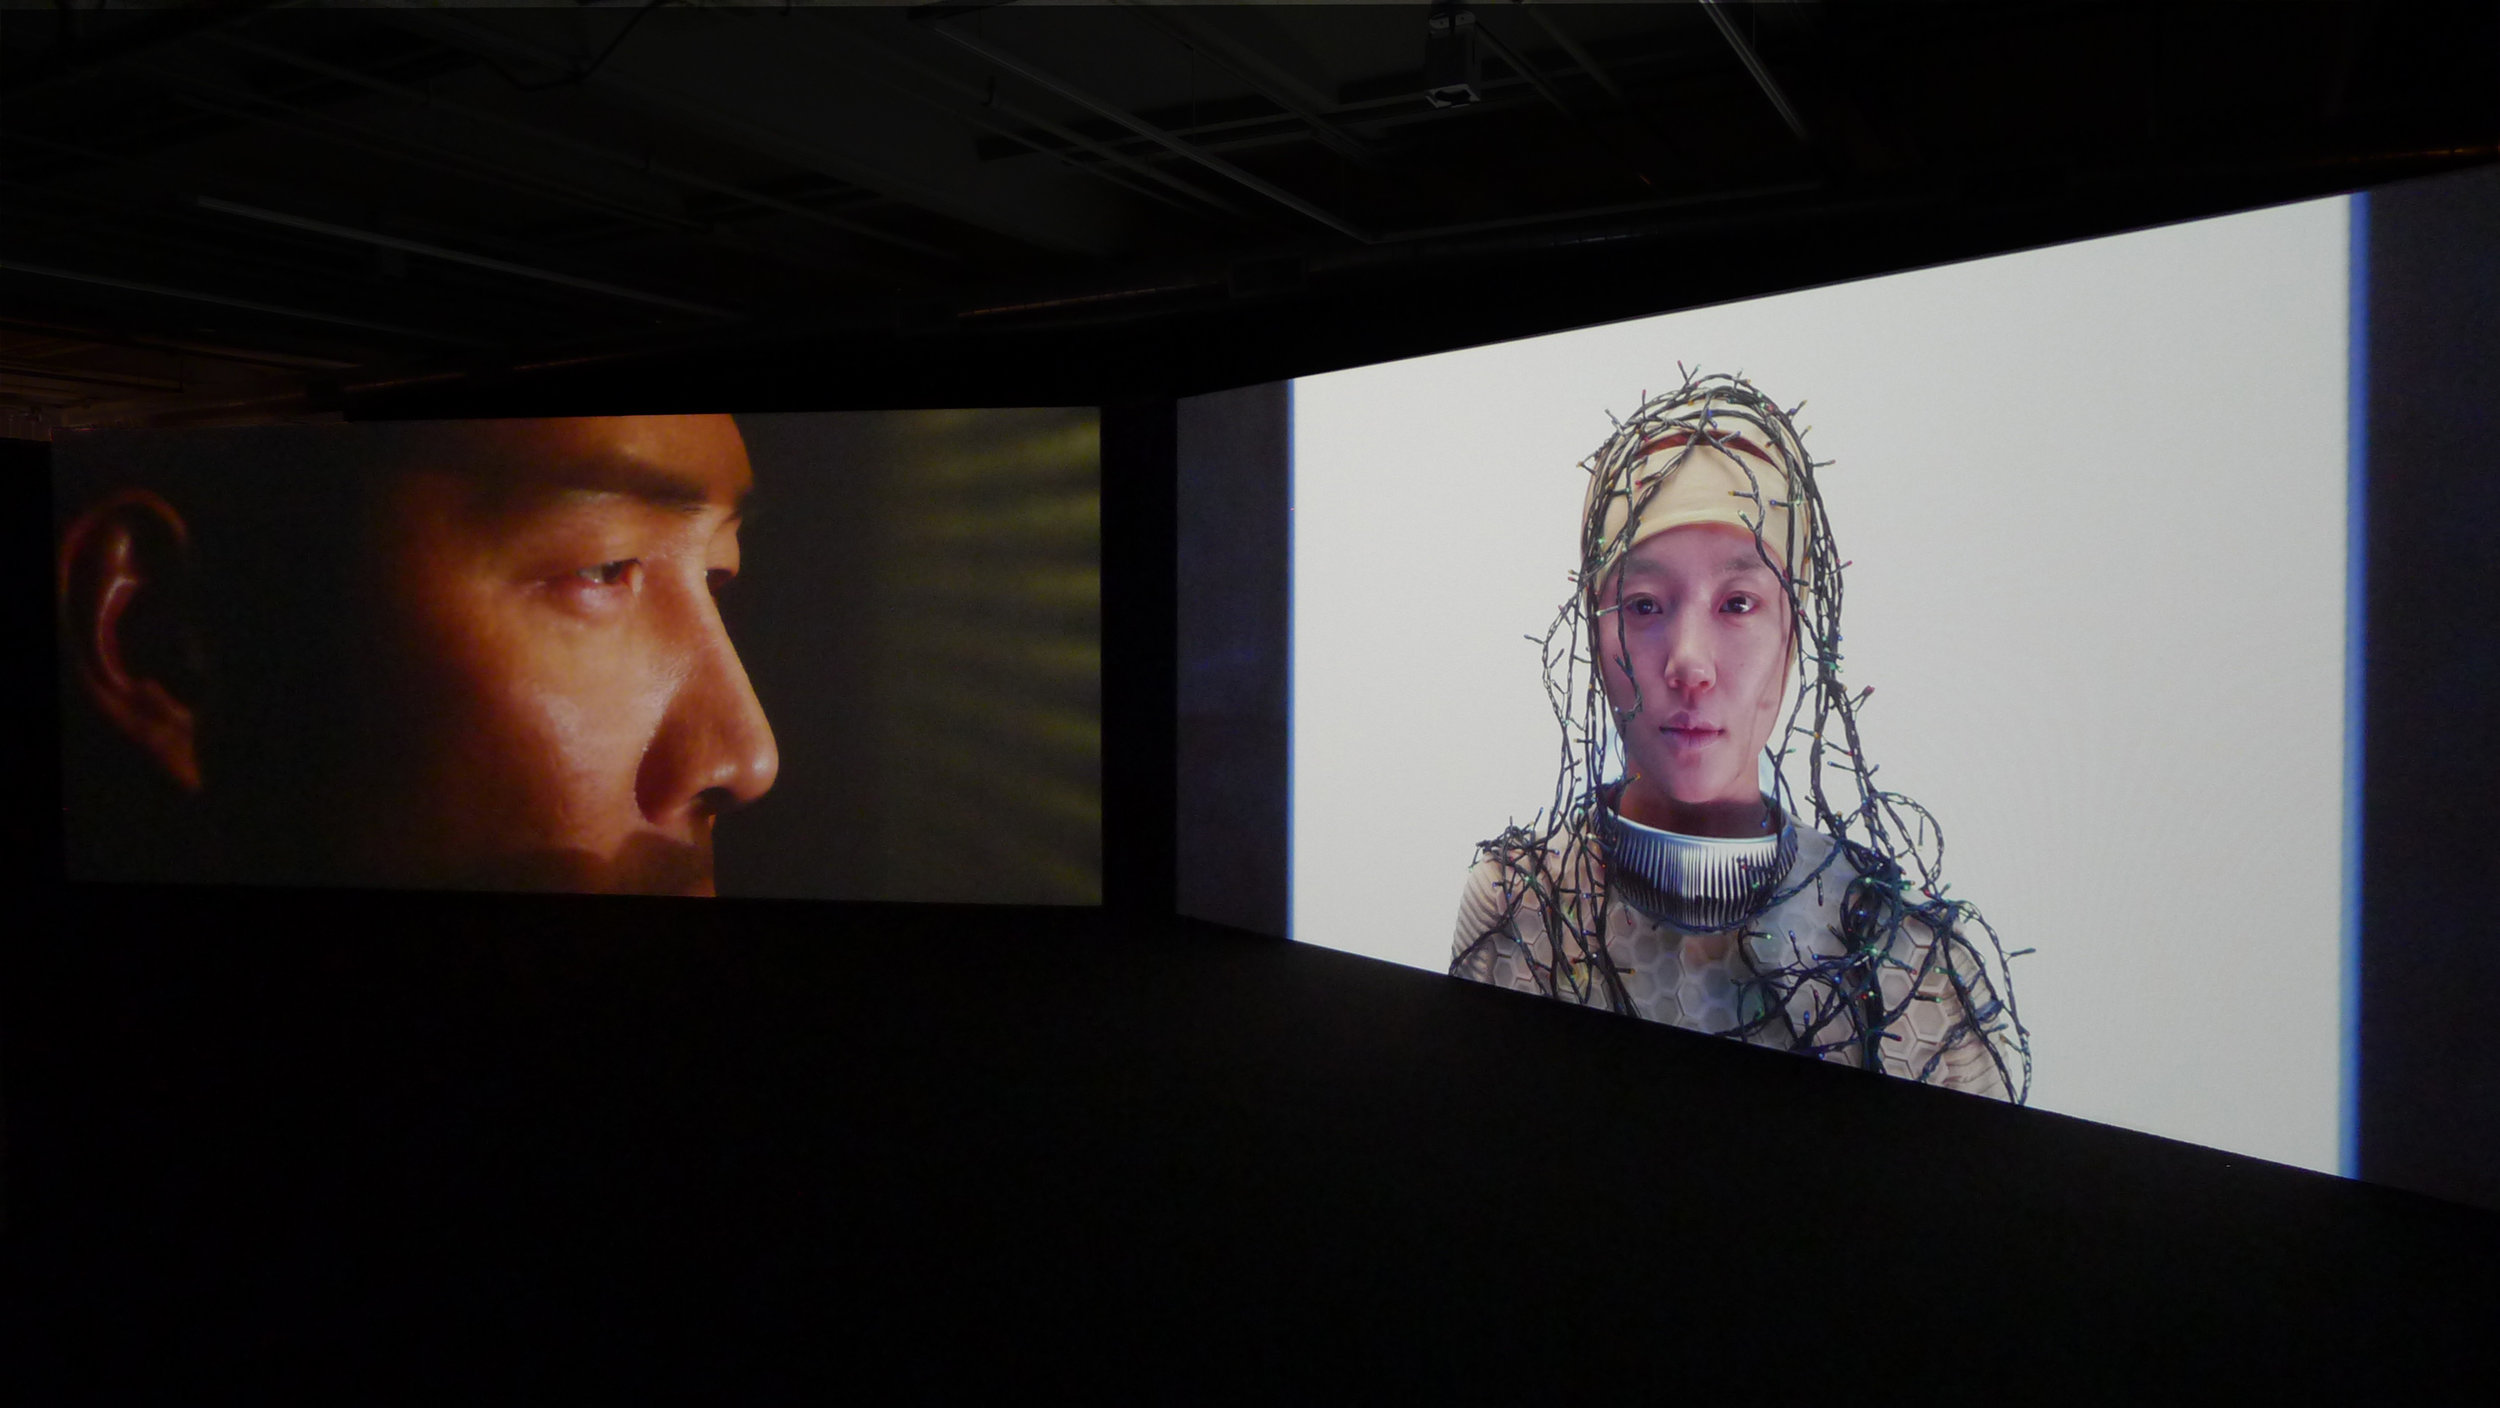 """The film EL FIN DEL MUNDO is premised on a future in which the survival of the human race is threatened due to drastic changes in the Earth's environment. The two-screen video installation asks back: in the end, what form and posture will the last remaining art take on, as seen through the artwork of an artist standing at the verge of death and at the final moment of a human catastrophe? What is the meaning of art that examines the process in which the """"new"""" humans, having been reborn following the disappearance of all our current values, realize an aesthetic consciousness and gain a self-awareness about art? Through the artists' recollections and discussion of the issues that were pertinent to the state of the world previously known to them, and their attempt to suggest what the definition and concept of aesthetics may be when all has changed, an introspective examination of current social structures and their irrationality is presented. Starring Lee Jung-jae and Yim Soo-jung, this film reveals the nexus between the image of the world's last remaining art and an art that announces new birth.  影片《世界末日》以这样一个未来为前提——由于地球环境的急剧变化,人类的生存受到了威胁。这部双频影像装置反问道:从面临死亡的艺术家所创作的作品和人类灾难的最后一刻来看,世界上留存下来的最后的艺术会呈现出怎样的形式和姿态呢?那些审视在我们当前价值观消失后重生的""""新""""人类实现其美学意识、并获取一种对艺术的自我认知的过程的艺术,它们的意义又何在呢?通过对先前已知世界状态等相关议题的的回忆和探讨,以及对大变革之后美学的定义与概念之可能的常识性解答,两位艺术家对当前社会结构及其非理性的特点进行了自我审视。这部影片由李政宰和金来元出演,揭示了旧世界最后之艺术以及新世界最初之艺术之间的联结。  《世界末日》,2012年,双频高清电影,13分35秒 El Fin Del Mundo, 2012, 2 channel HD film, 13 mins 35 secs"""